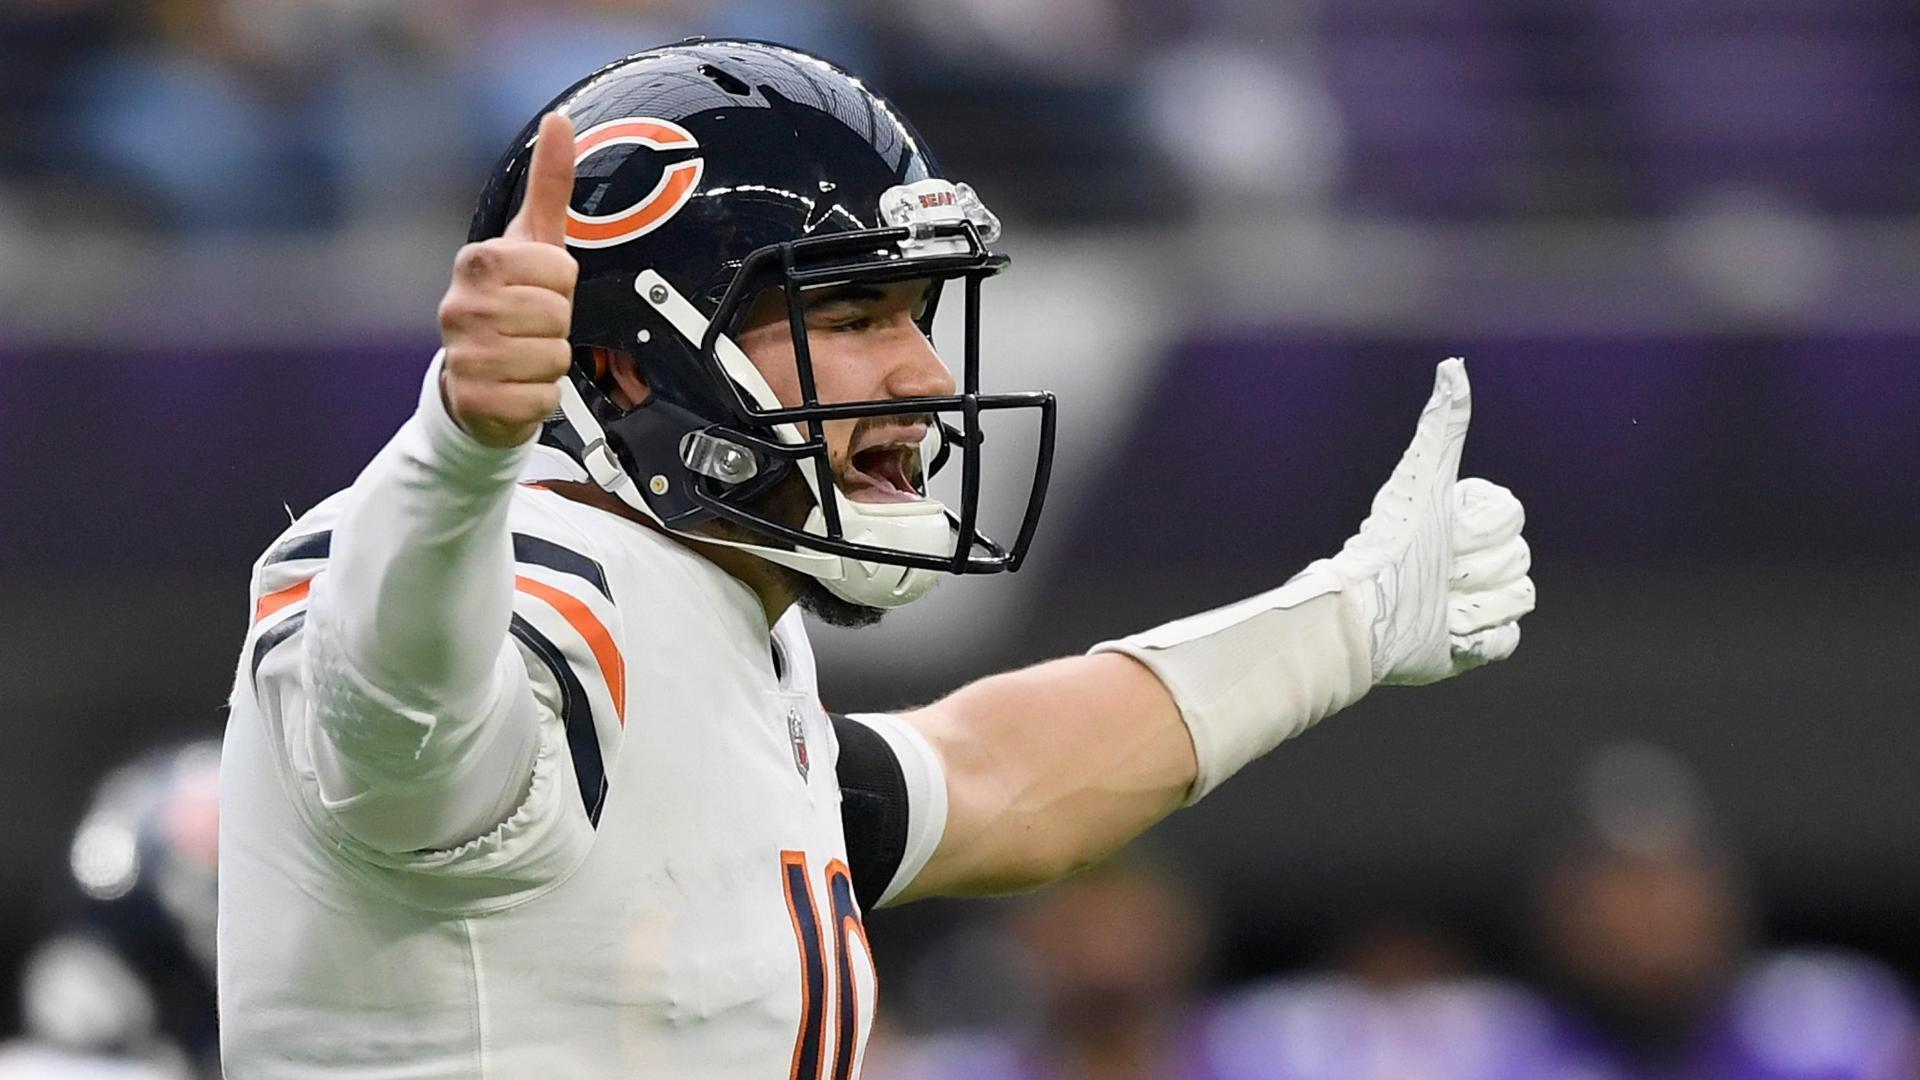 Is Trubisky still the Bears answer at QB?